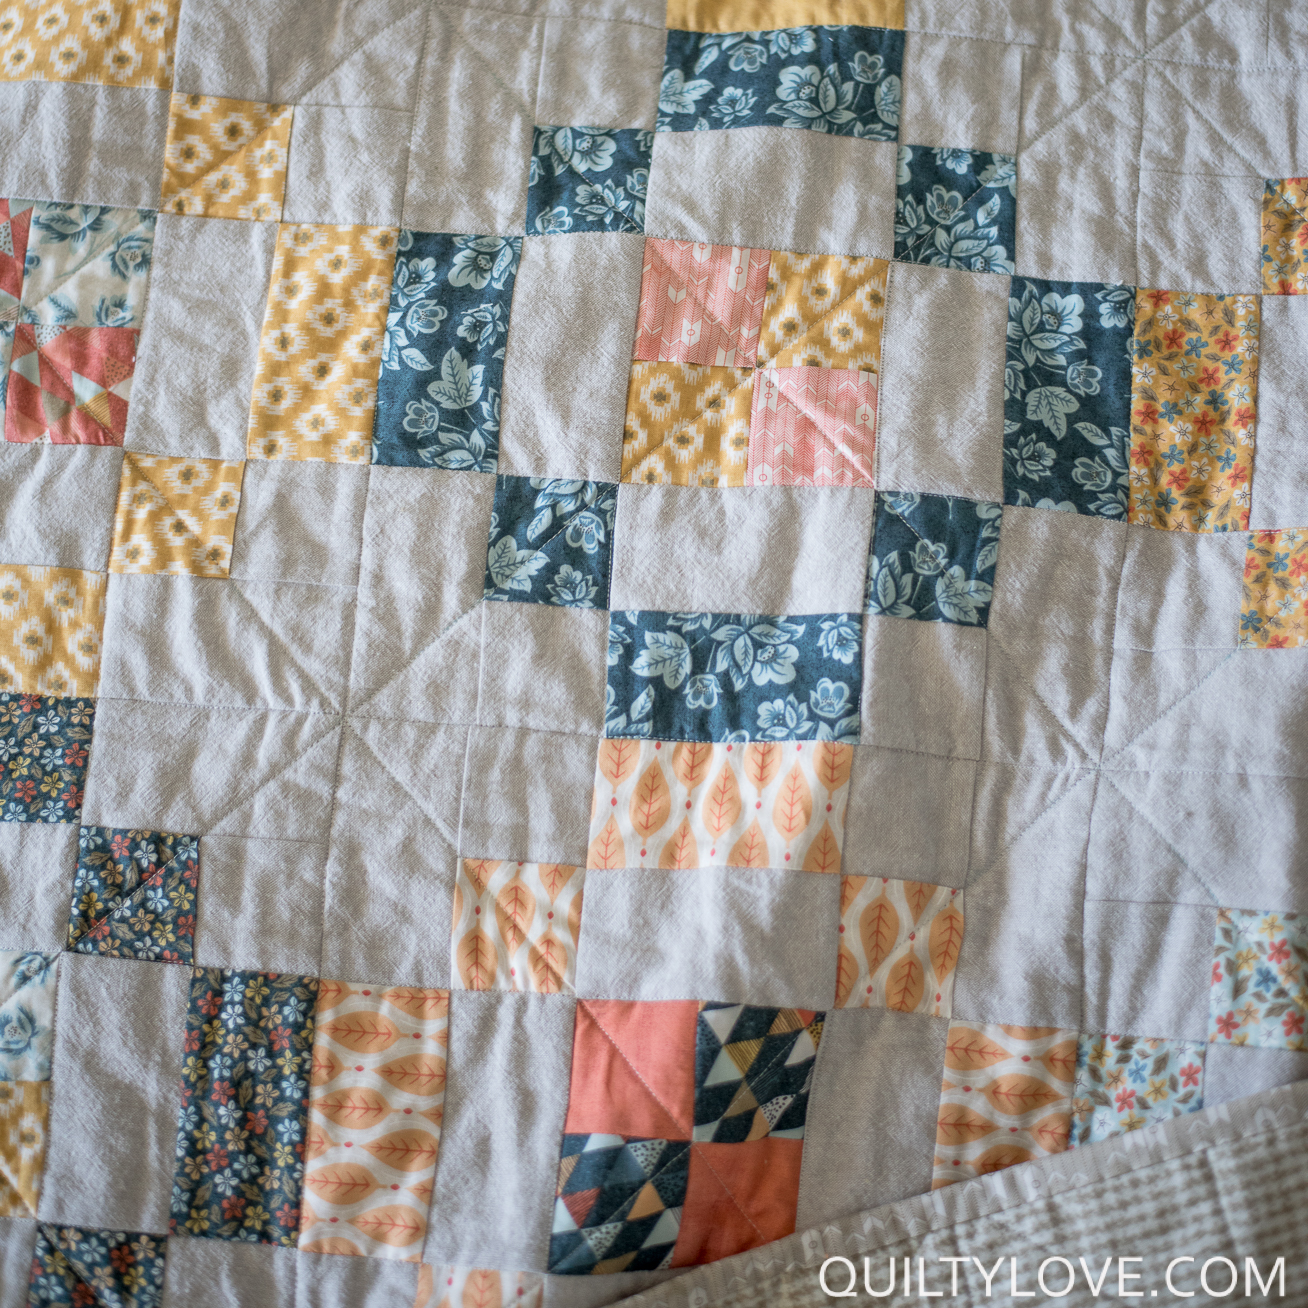 essex linen jelly rings quilt